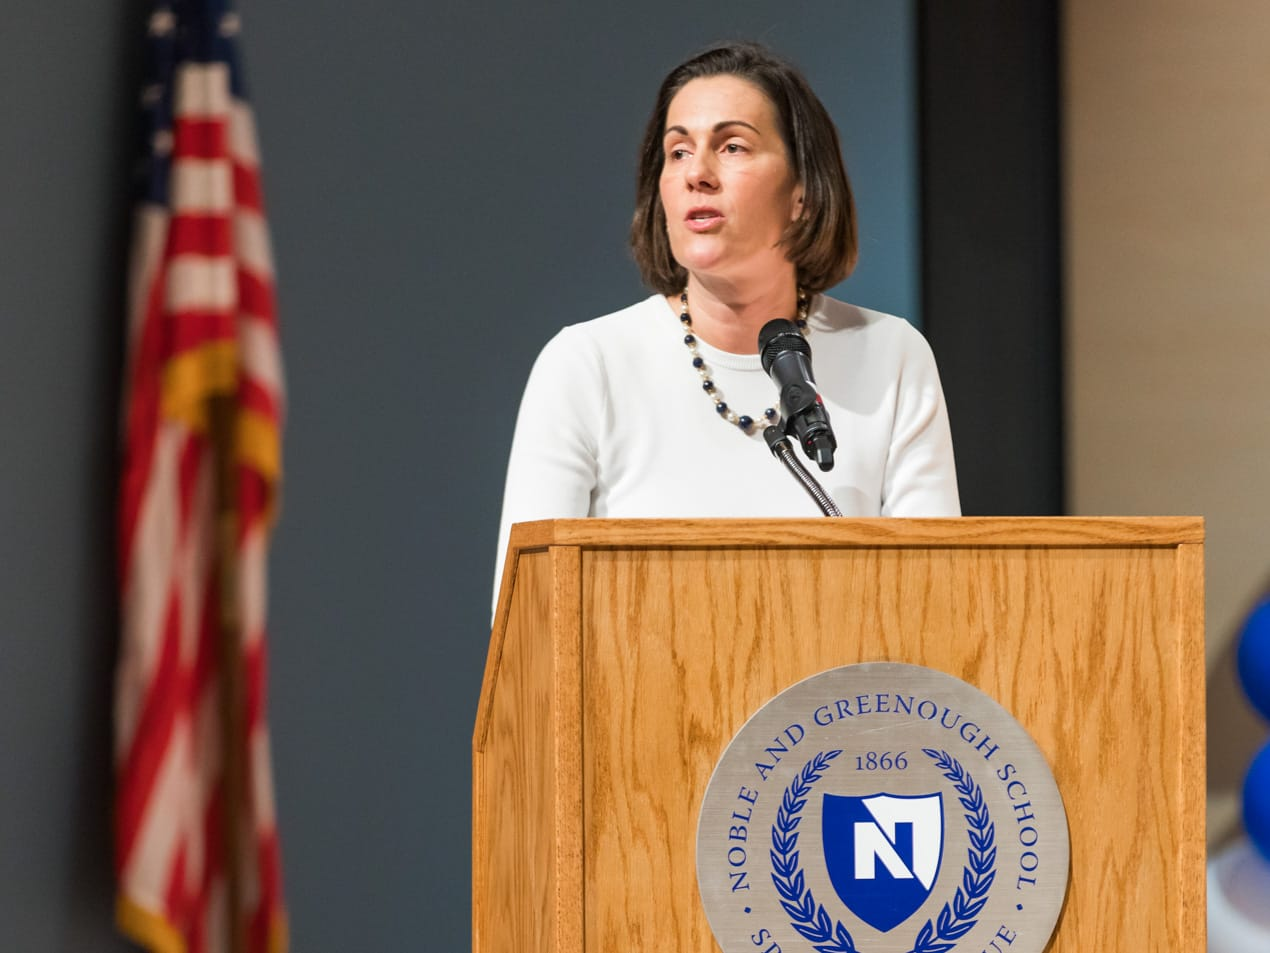 Cathy Hall speaking at a graduation